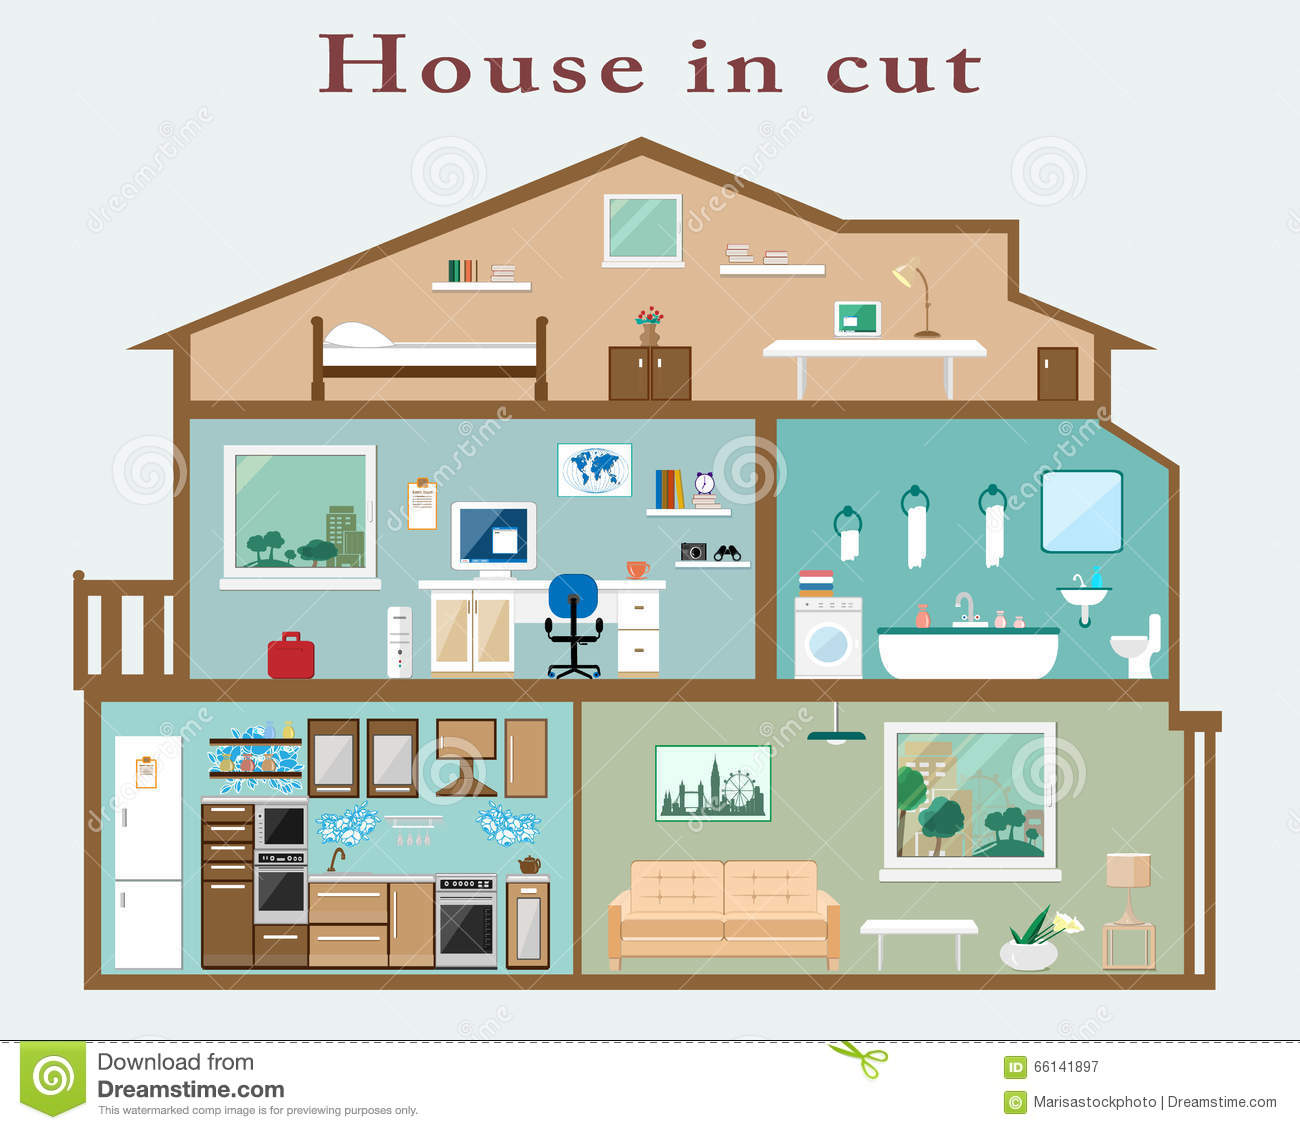 House In Cut Detailed Flat Style Interior Set Of Rooms